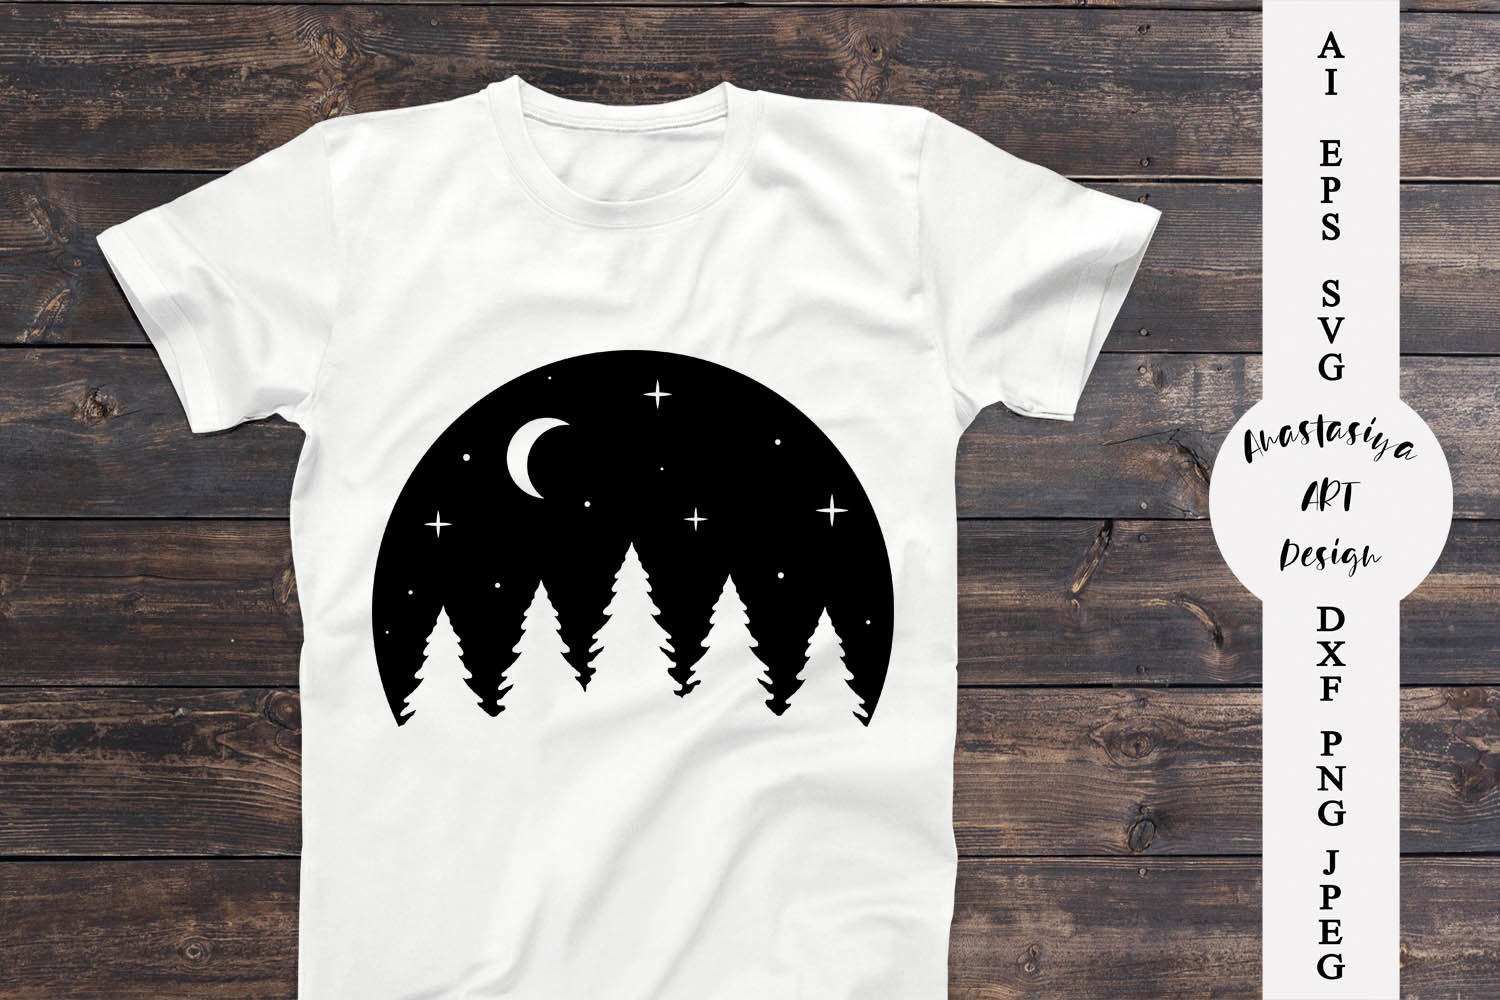 Moon and forest svg, Adventure shirt svg, Travel dxf example image 1